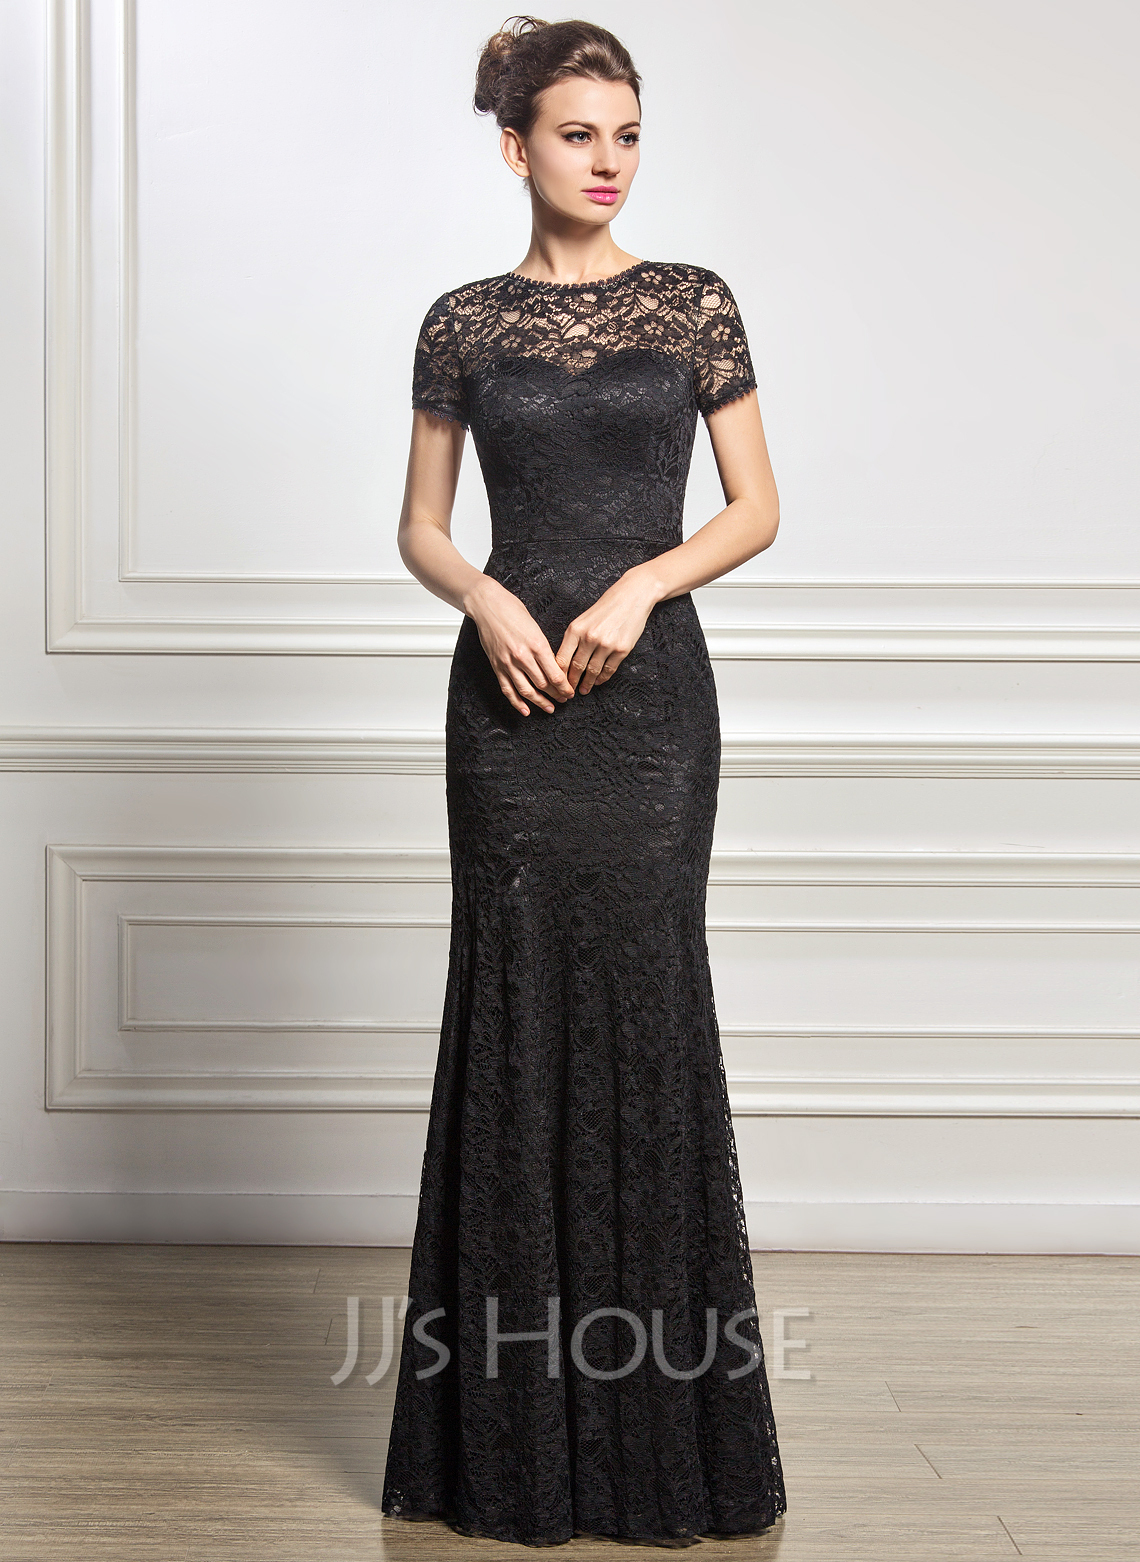 17ccc46fecd Trumpet Mermaid Scoop Neck Floor-Length Lace Mother of the Bride Dress.  Loading zoom